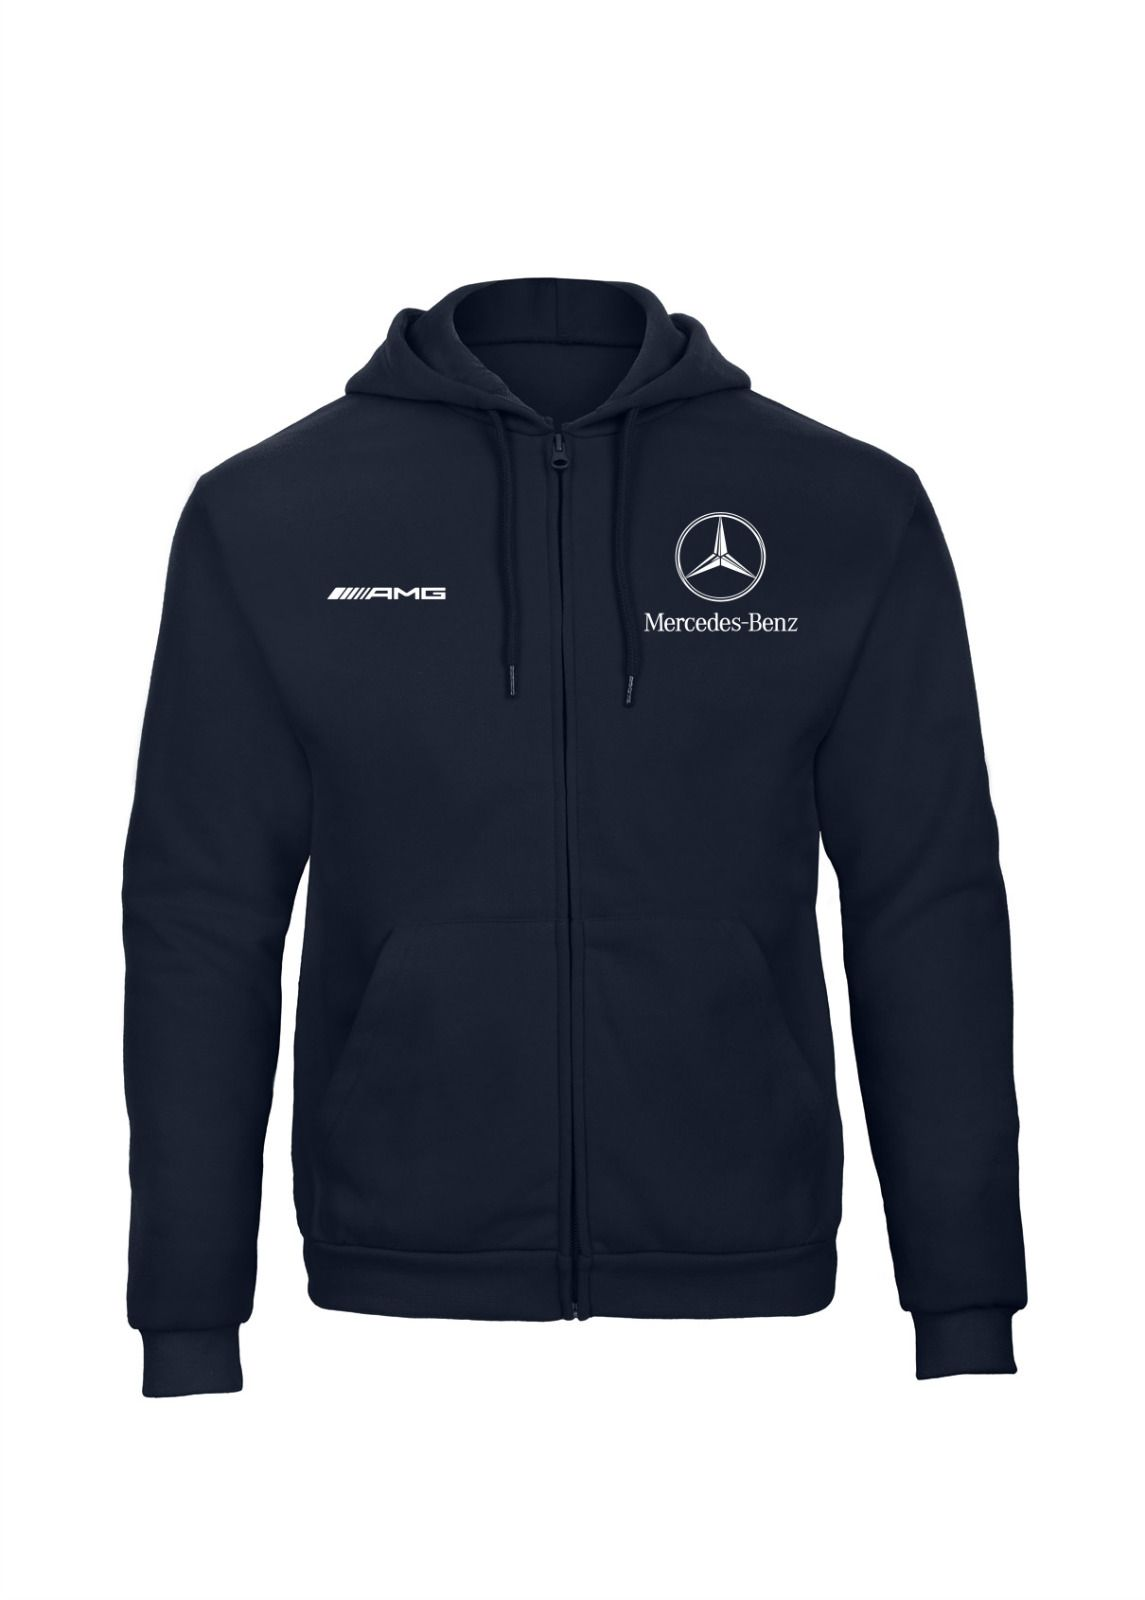 sports shoes ceb9b 66f56 Mercedes Benz Hoodie Amg Automotive Racing Dtm Quality F1 Petronas